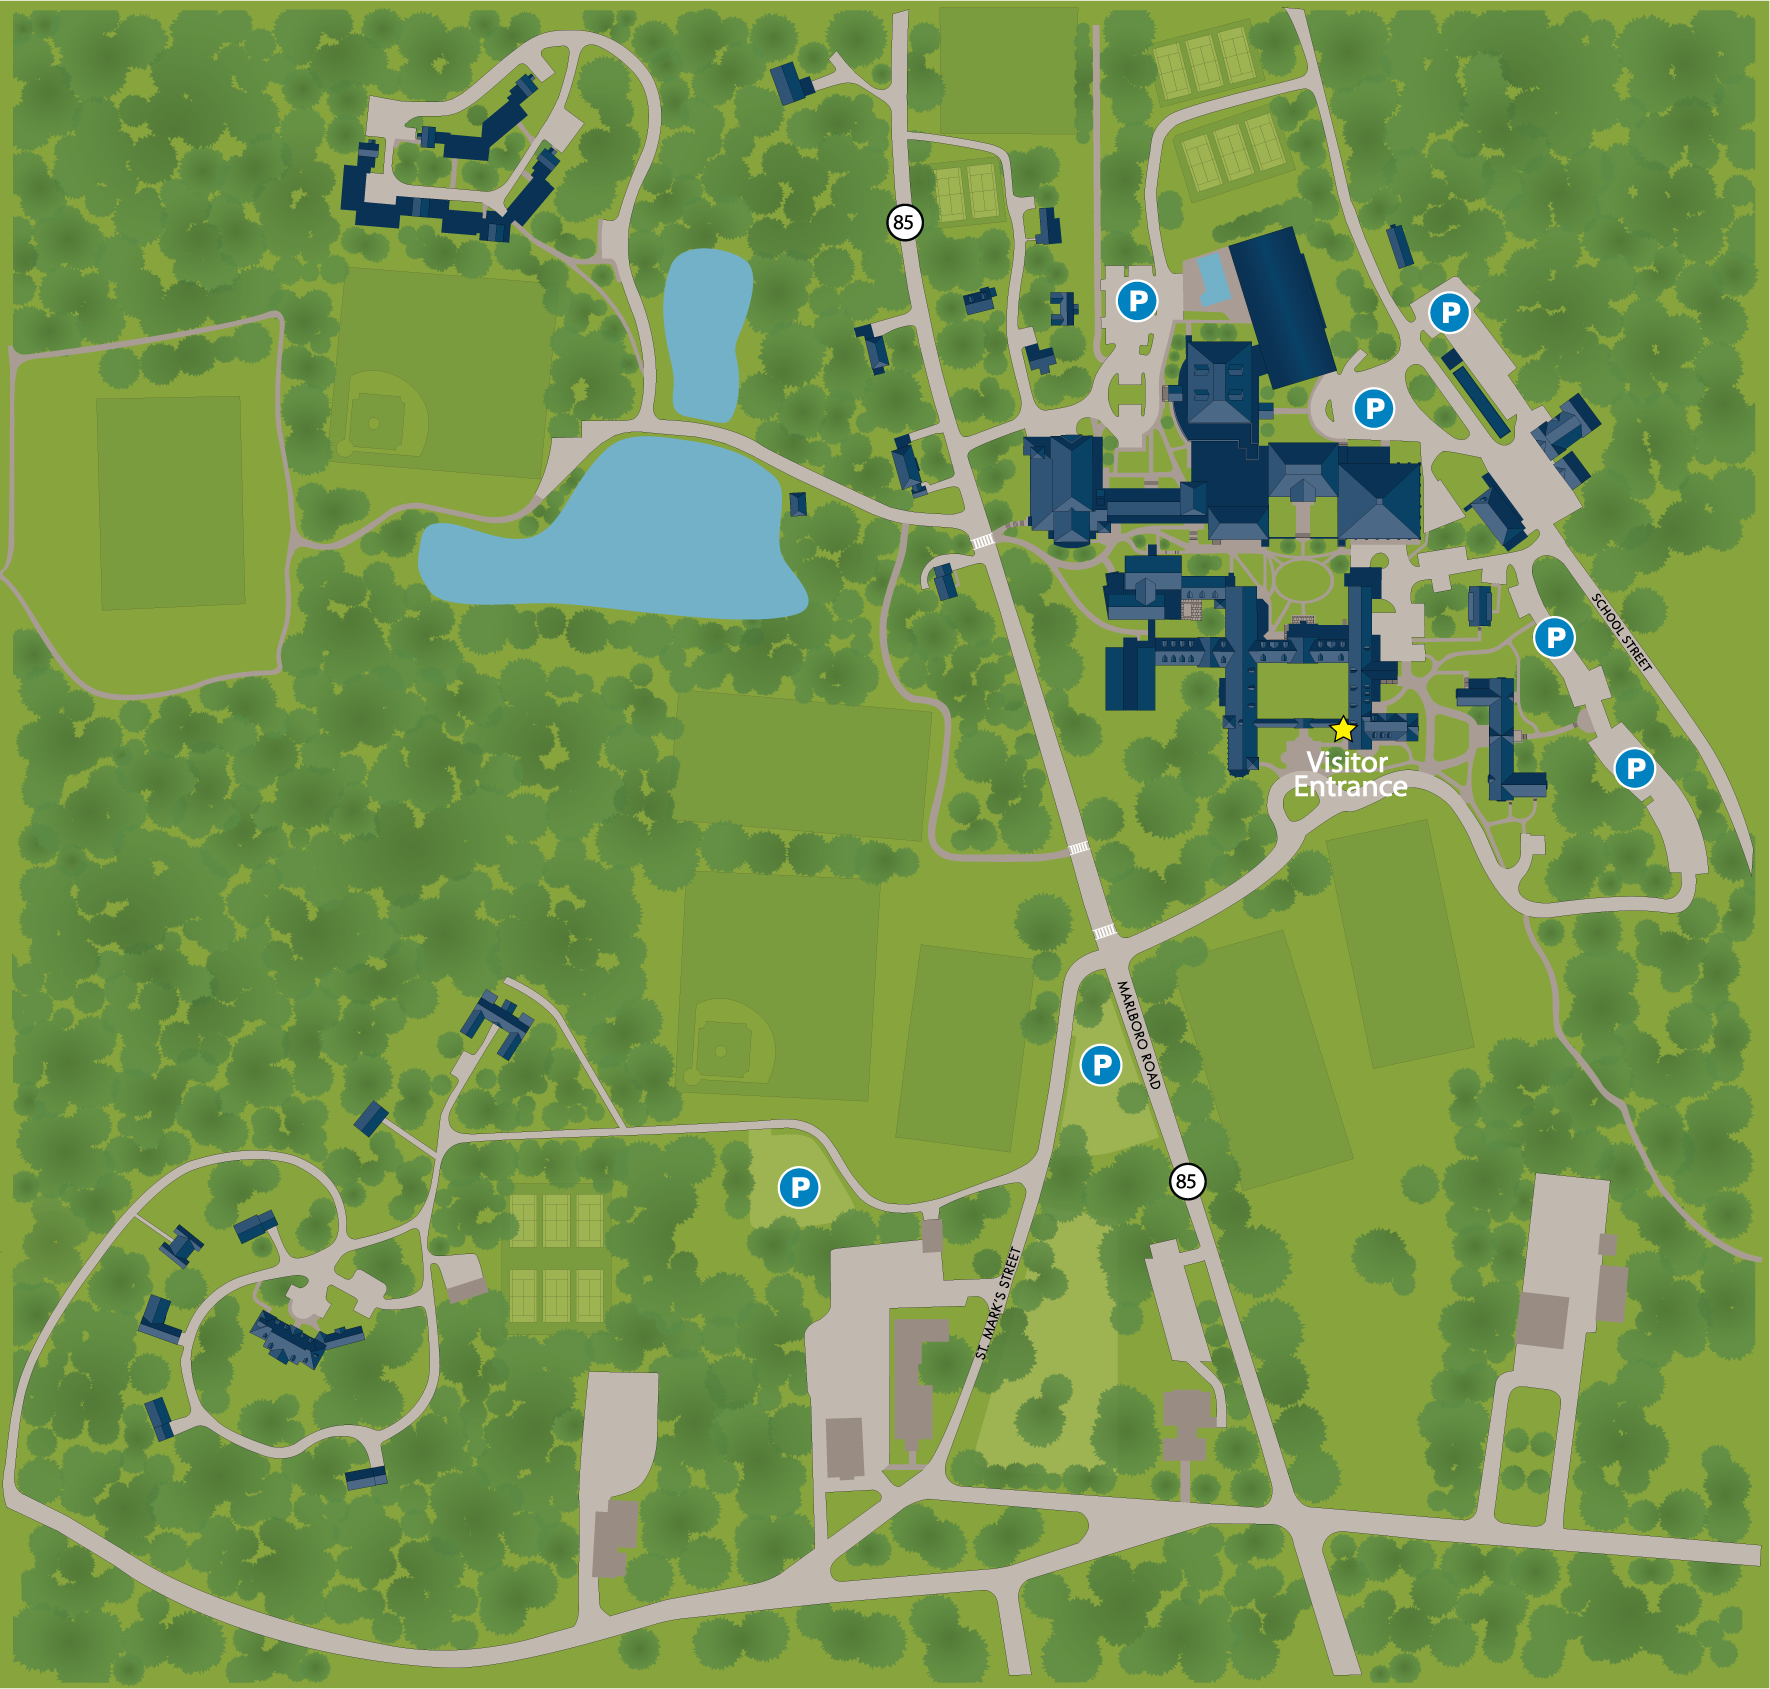 South Texas College Campus Map.Campus Map St Mark S School